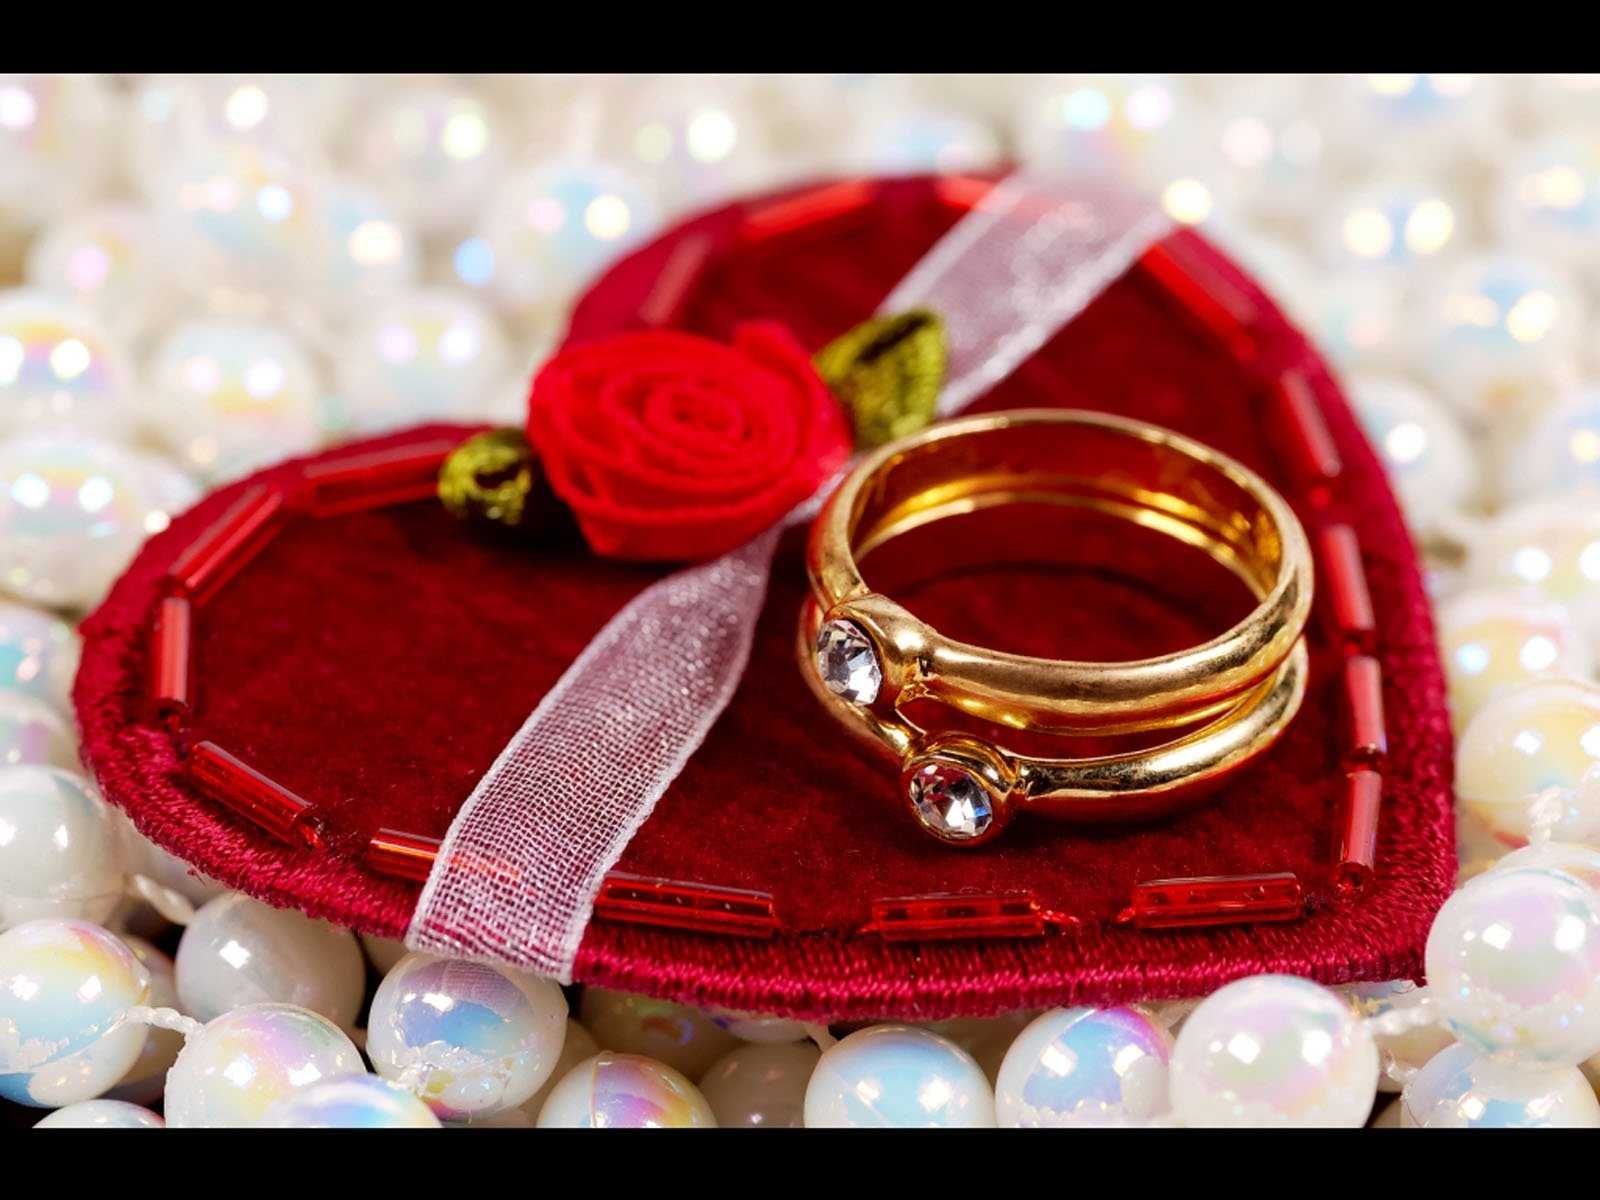 10 Fantastic Valentines Day Ideas For Wife 1 trendy new years gift ideas for your wife trendy mods